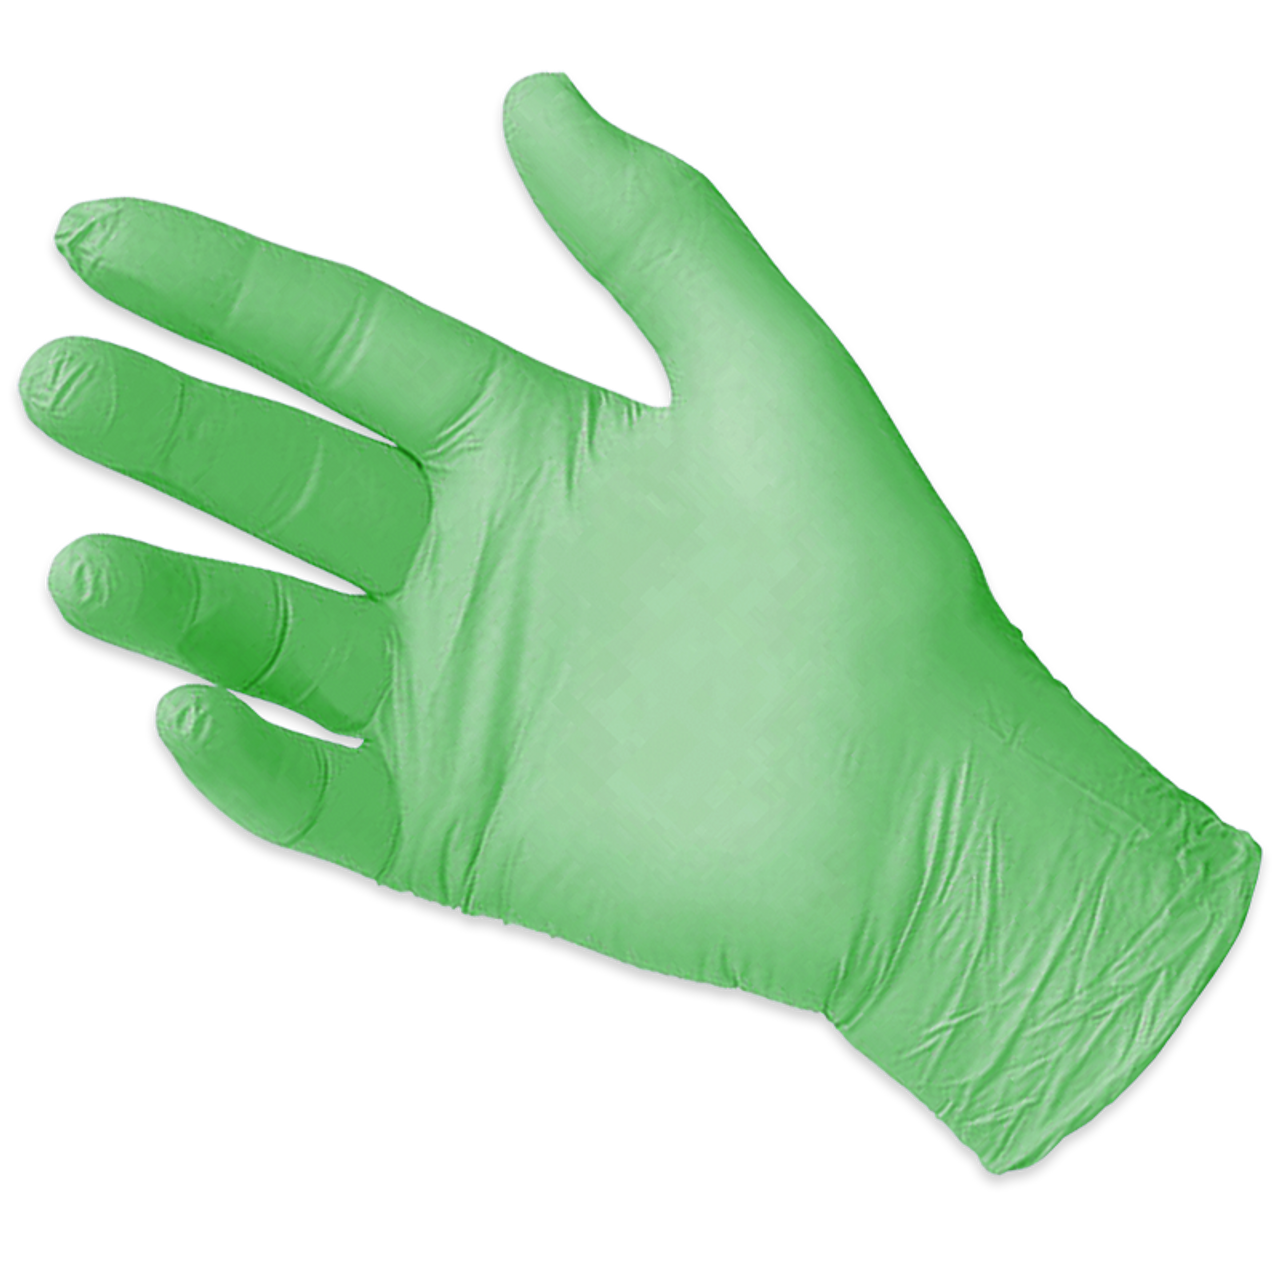 Halyard Flexaprene Green Exam Glove